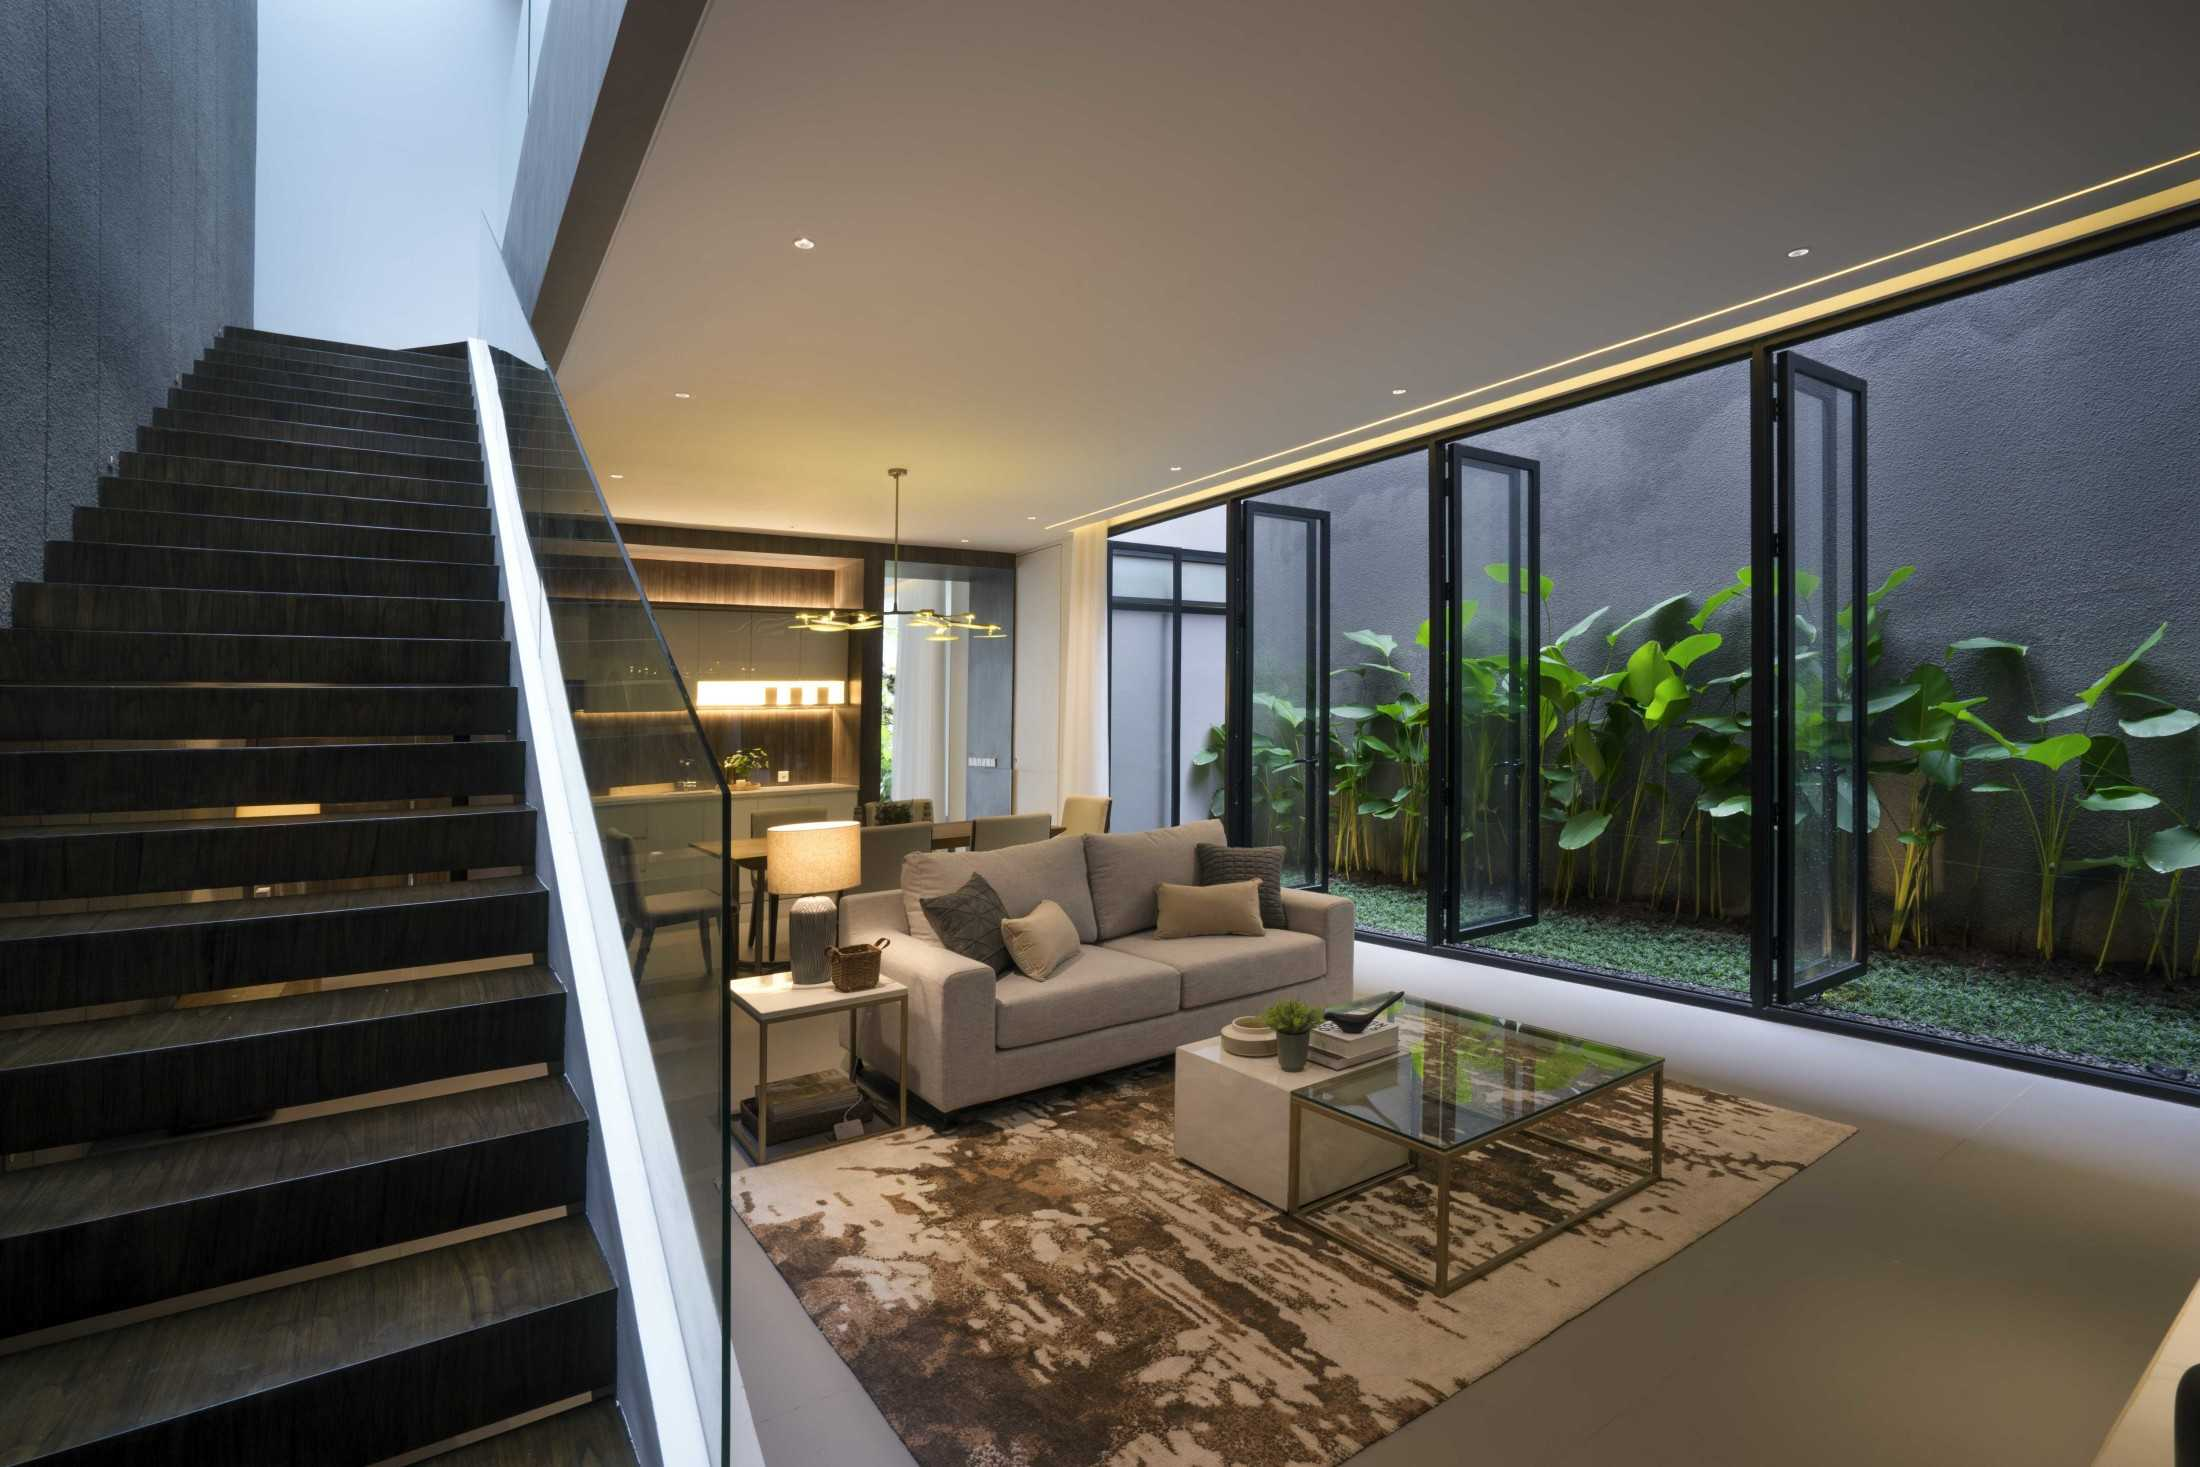 Simple Projects Architecture 'hhh' House Surabaya, Kota Sby, Jawa Timur, Indonesia  Simple-Projects-Architecture-Hhh-House  75069